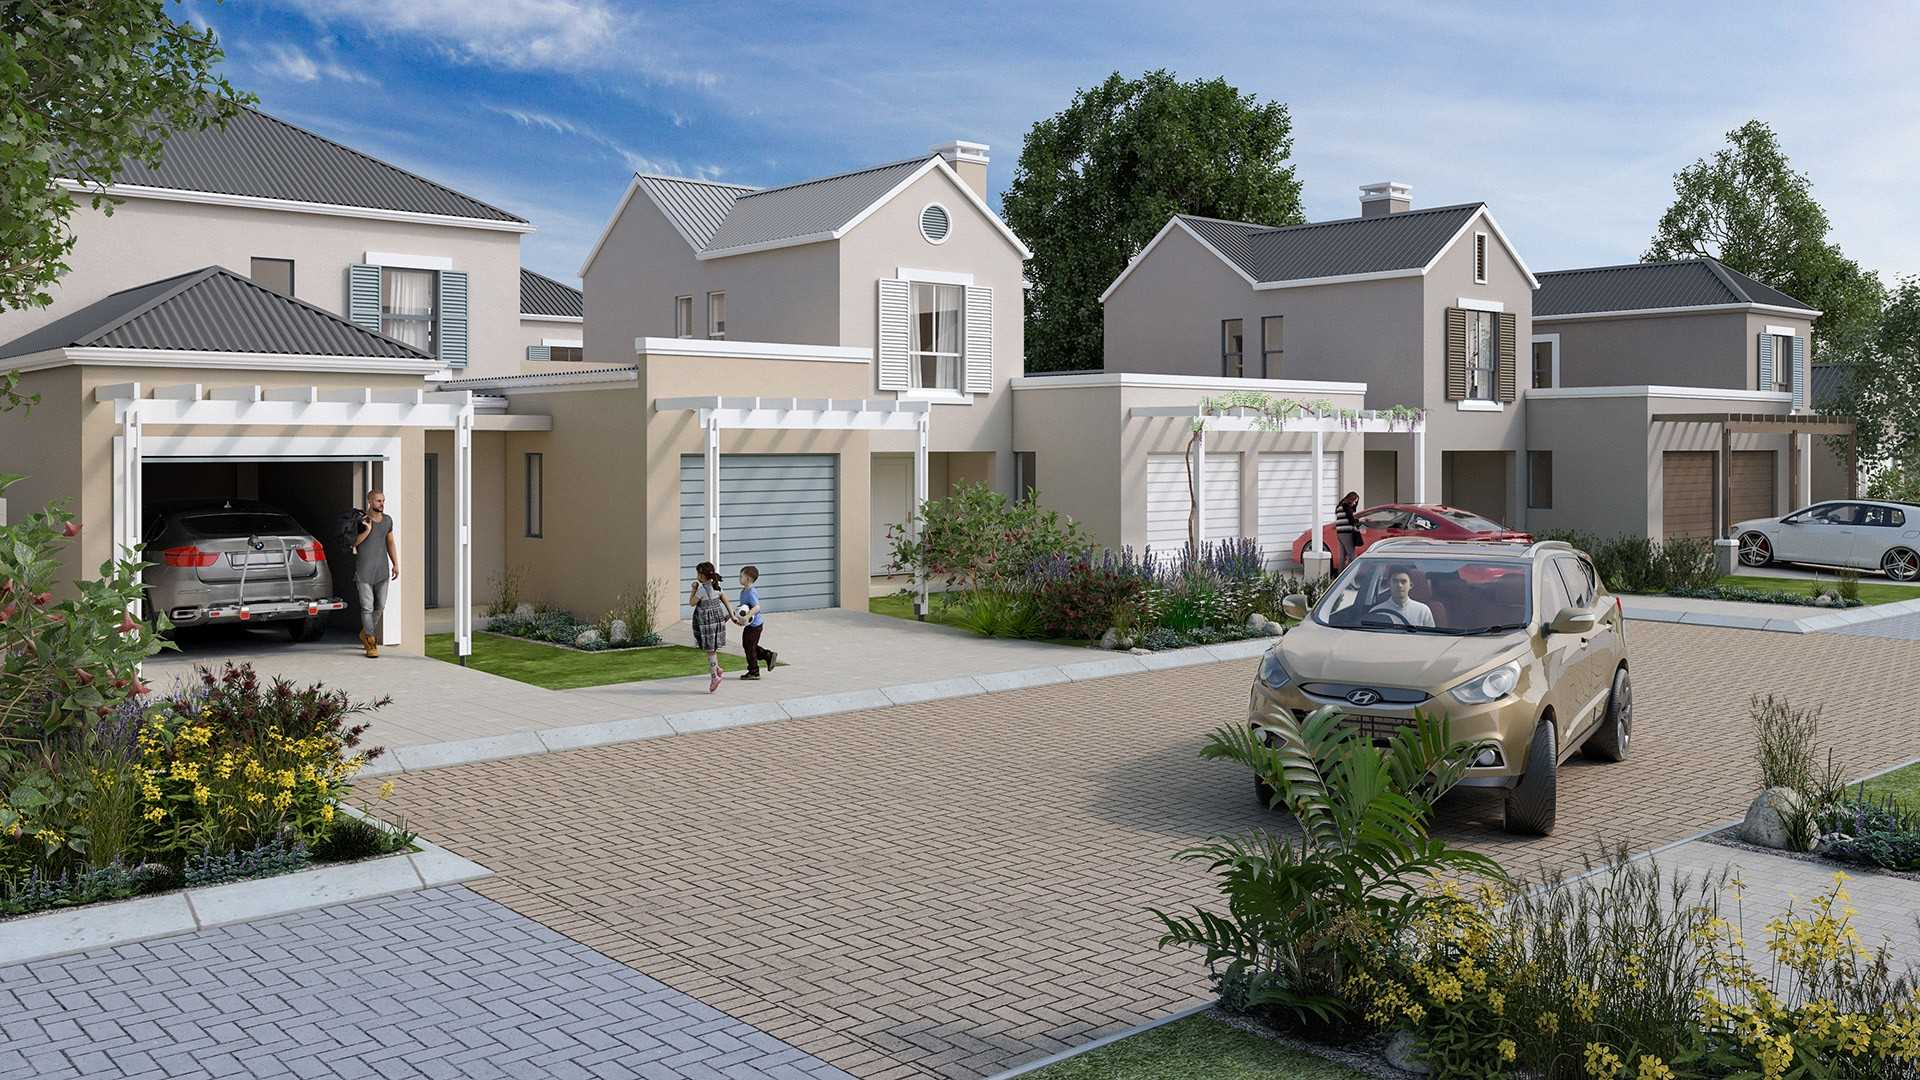 The next Avalon Estate,  Lifestyle Centre, 24/7 Security , no Transfer duty, three bedrooms, 2 bathrooms, garage, Modern, close to schools